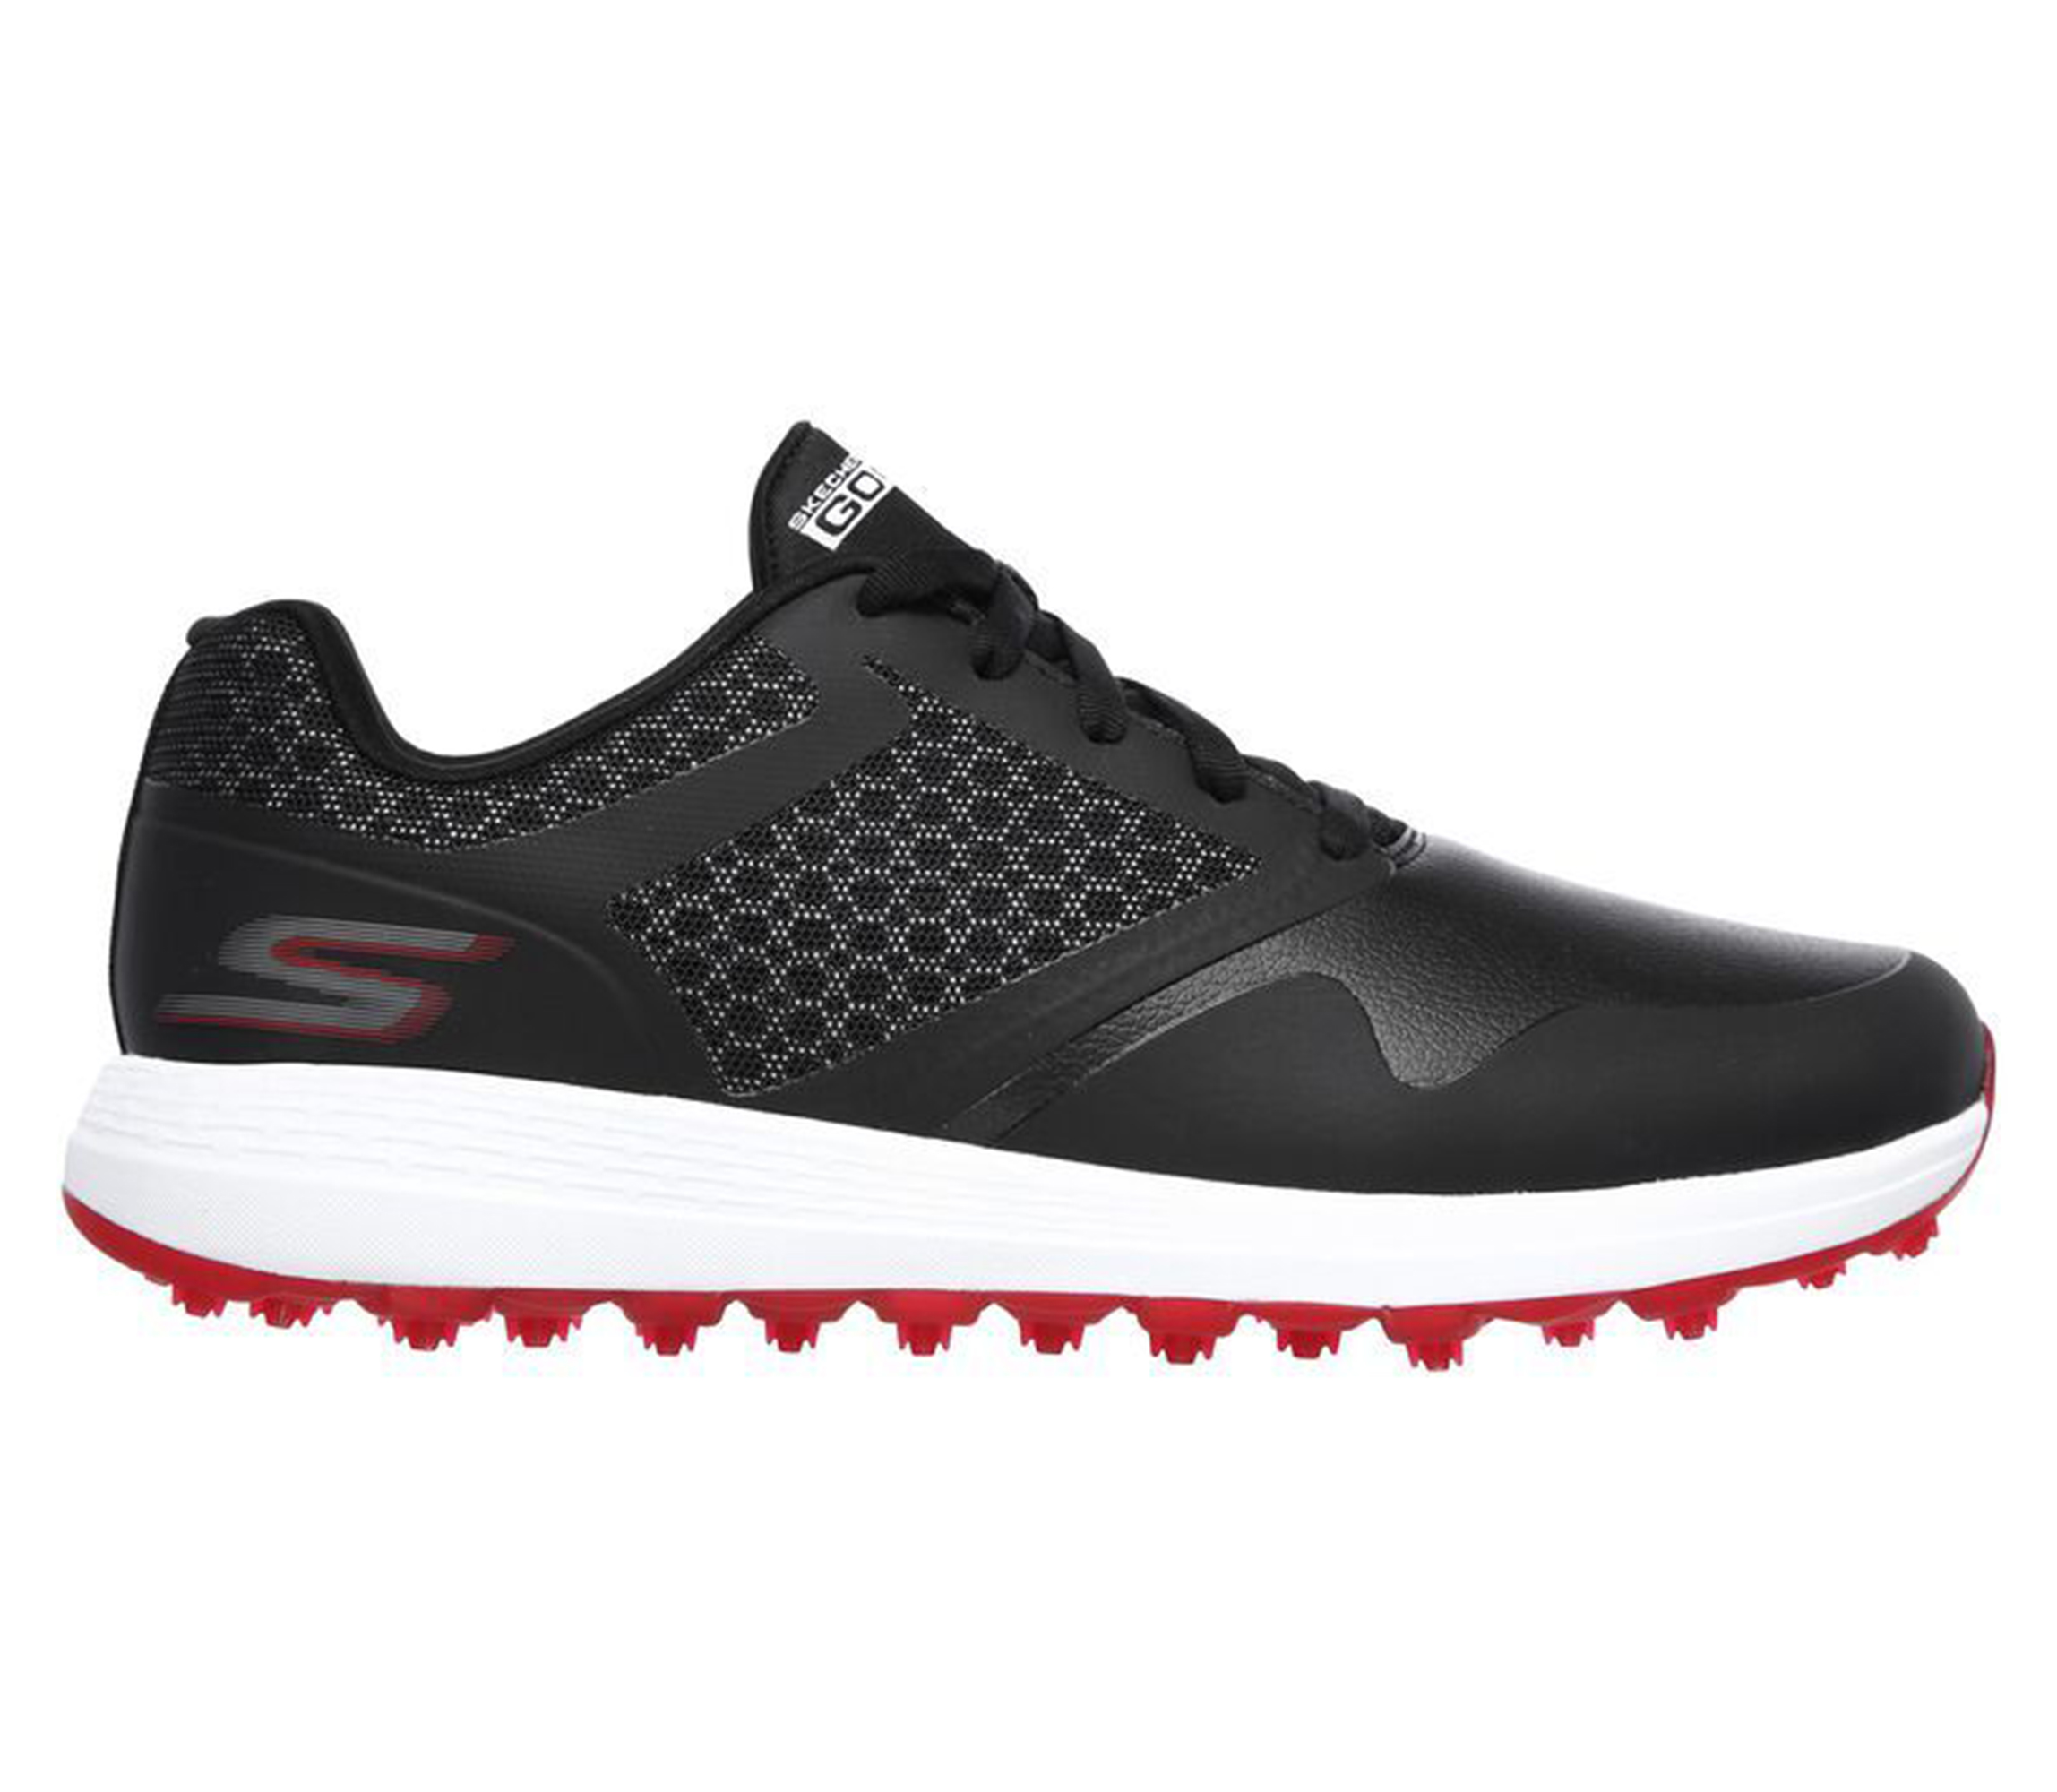 Skechers Go Golf Max Golf Shoes | More